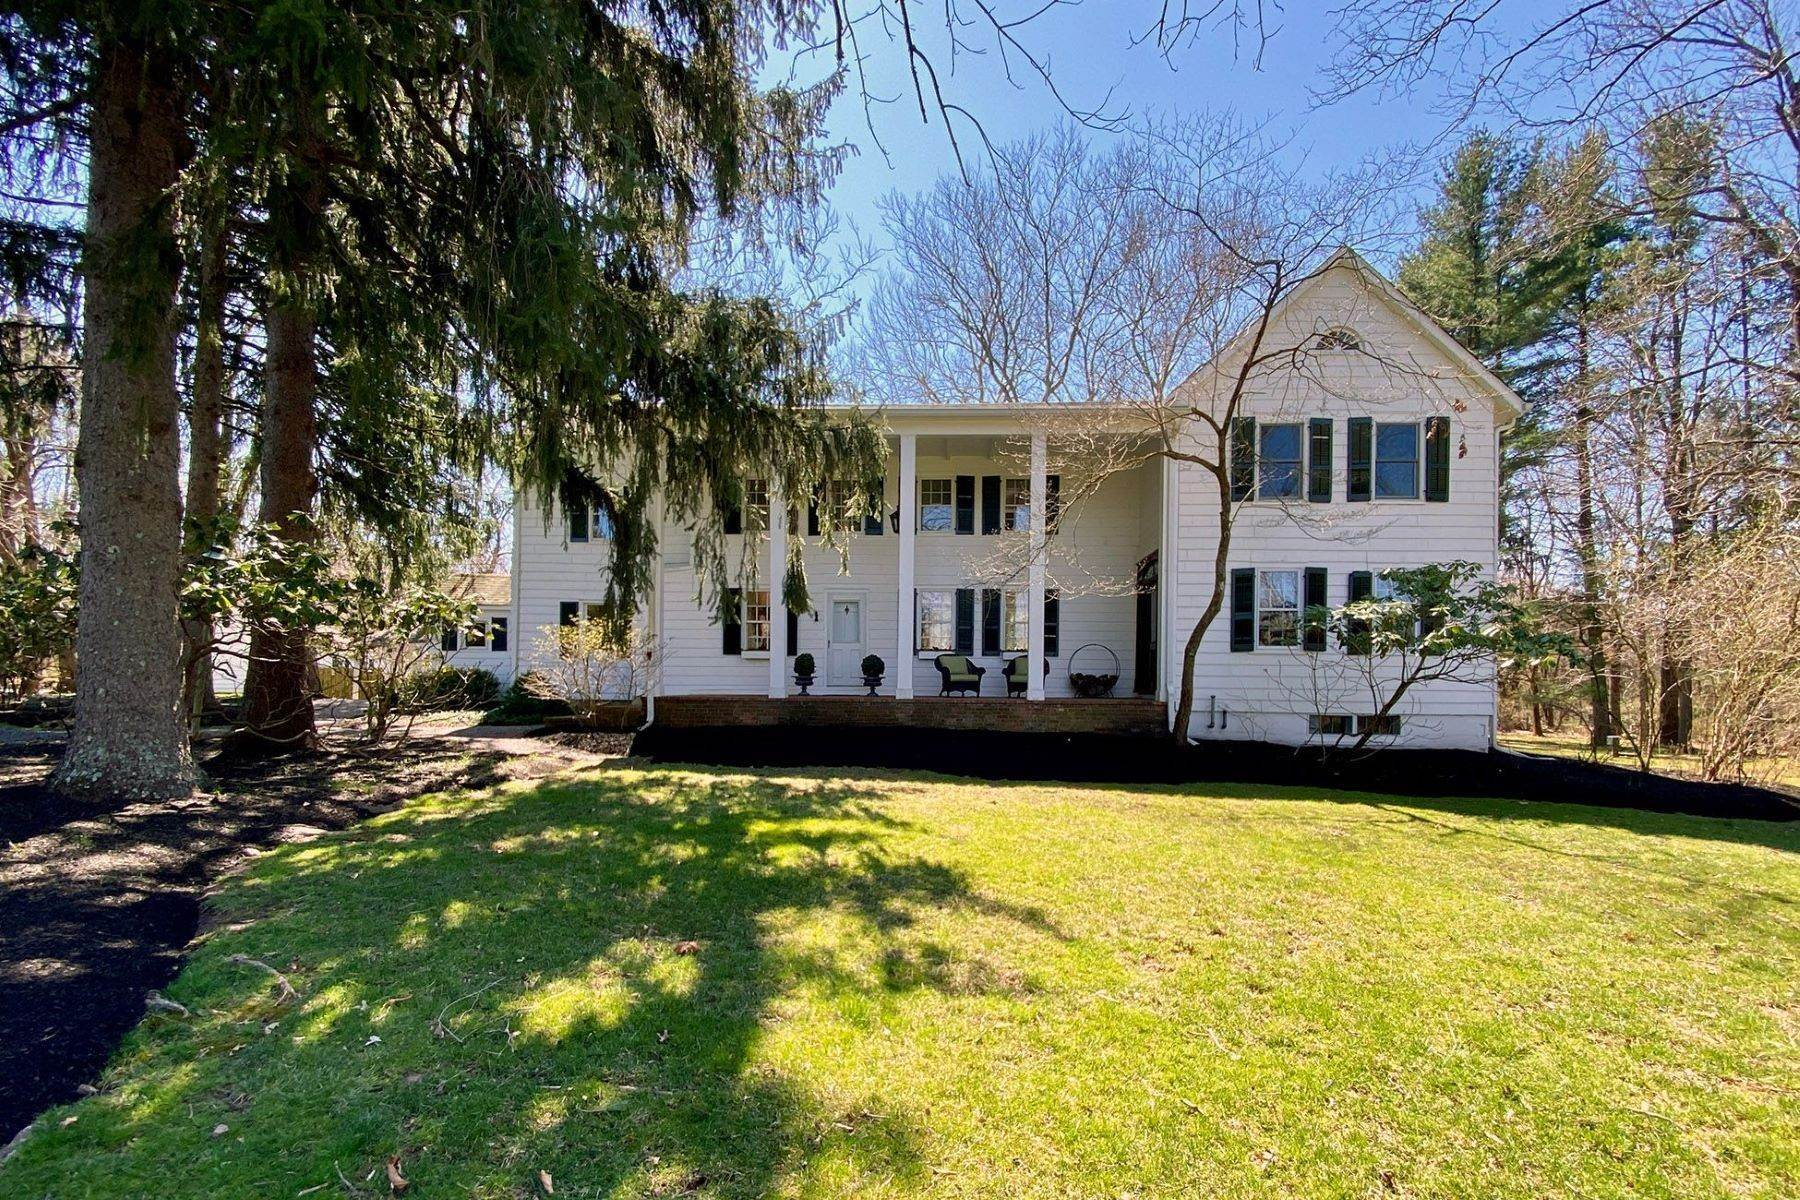 Single Family Homes for Sale at Prepare To Be Enchanted! 58 Titus Mill Road, Pennington, New Jersey 08534 United States